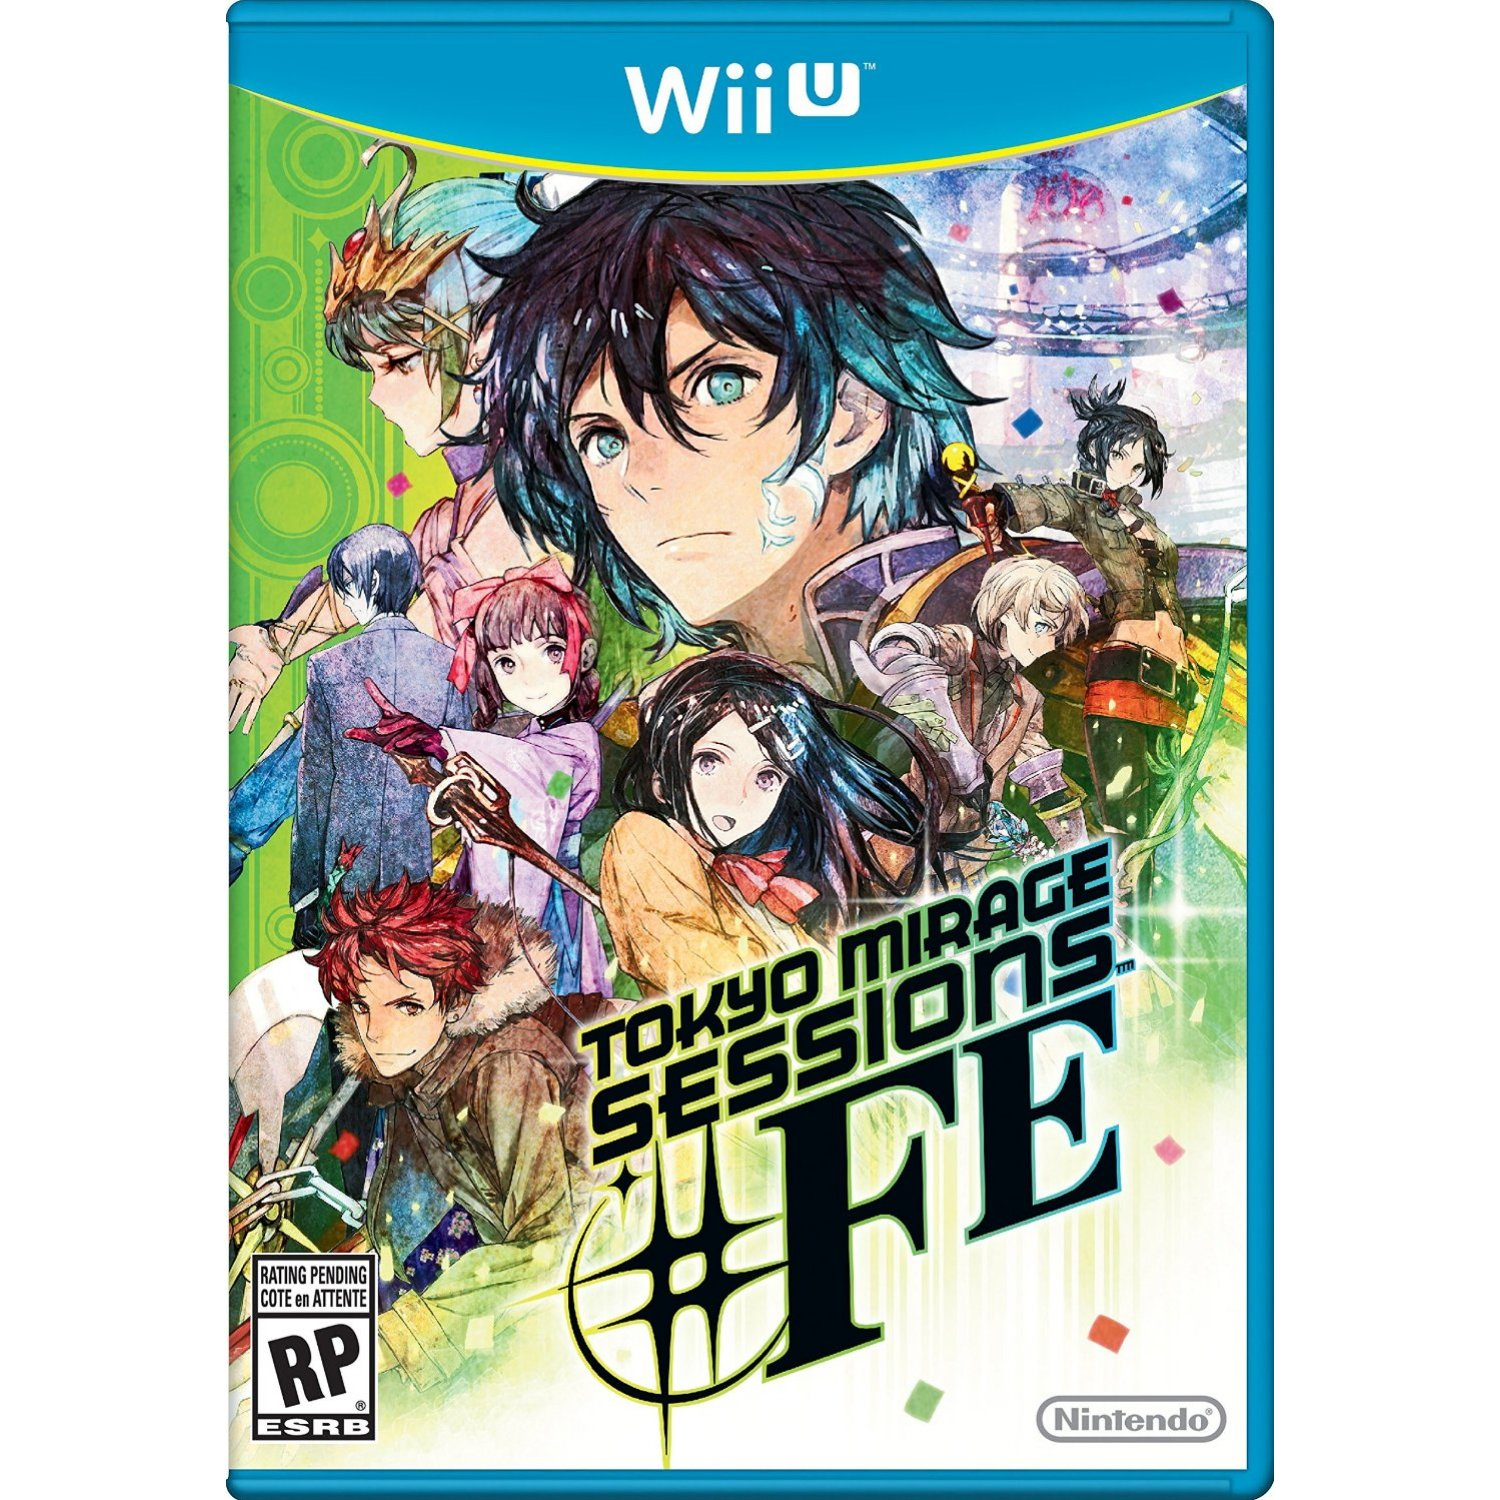 Tokyo_Mirage_sessions_localized_atlus_nintendo_box_art